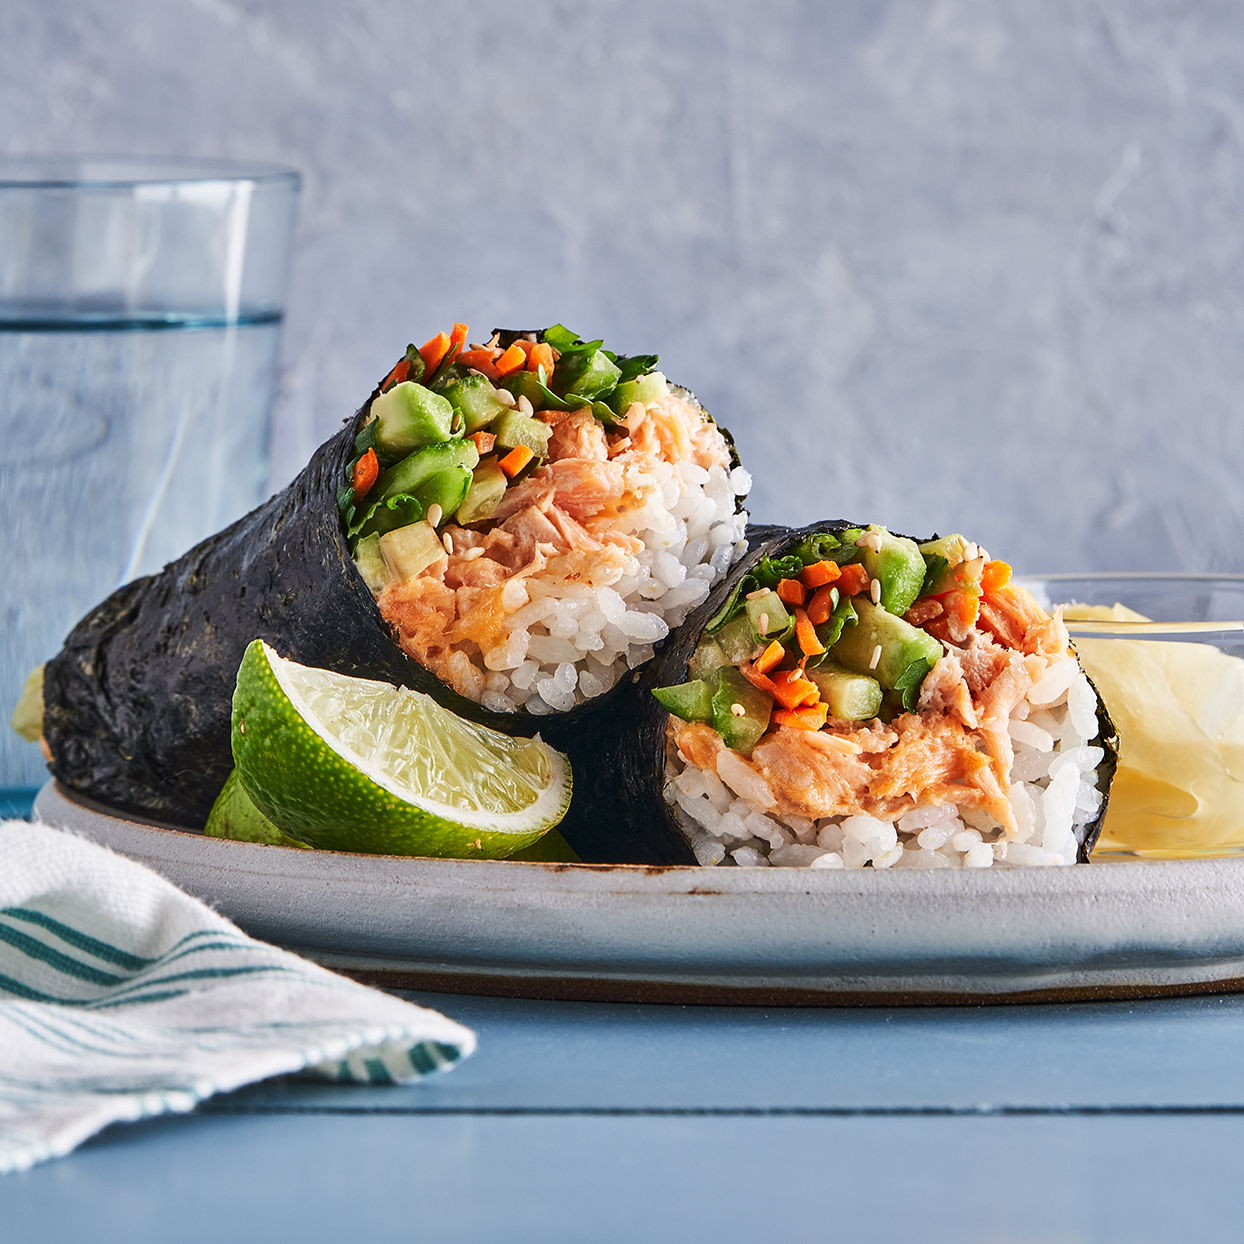 Spicy Salmon Sushi Roll-Ups Trusted Brands